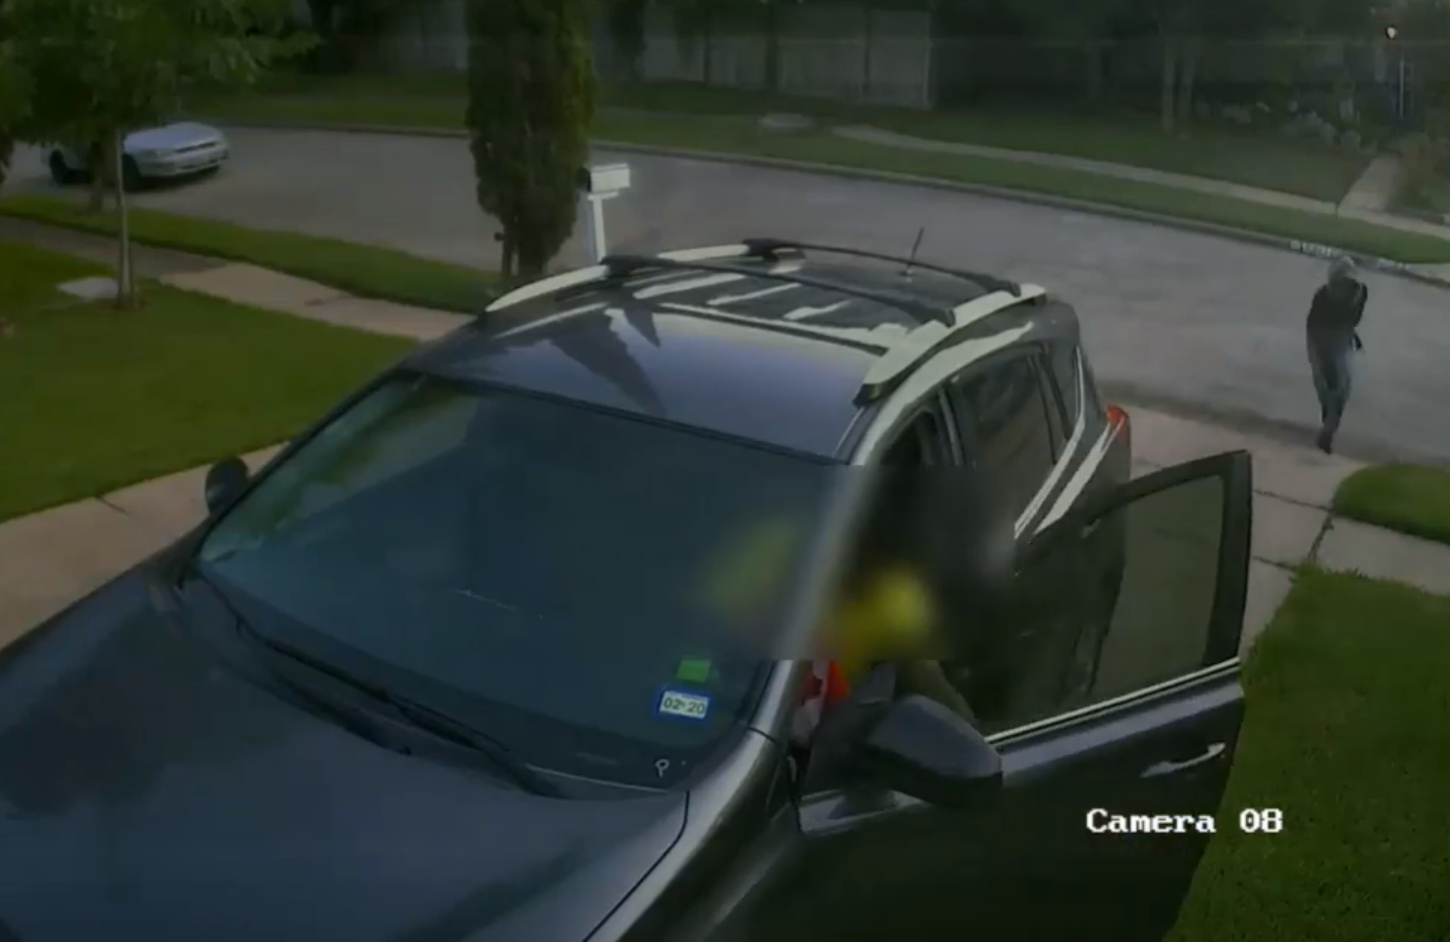 Video: Houston carjacking crew steal vehicle at gunpoint, police searching for suspects